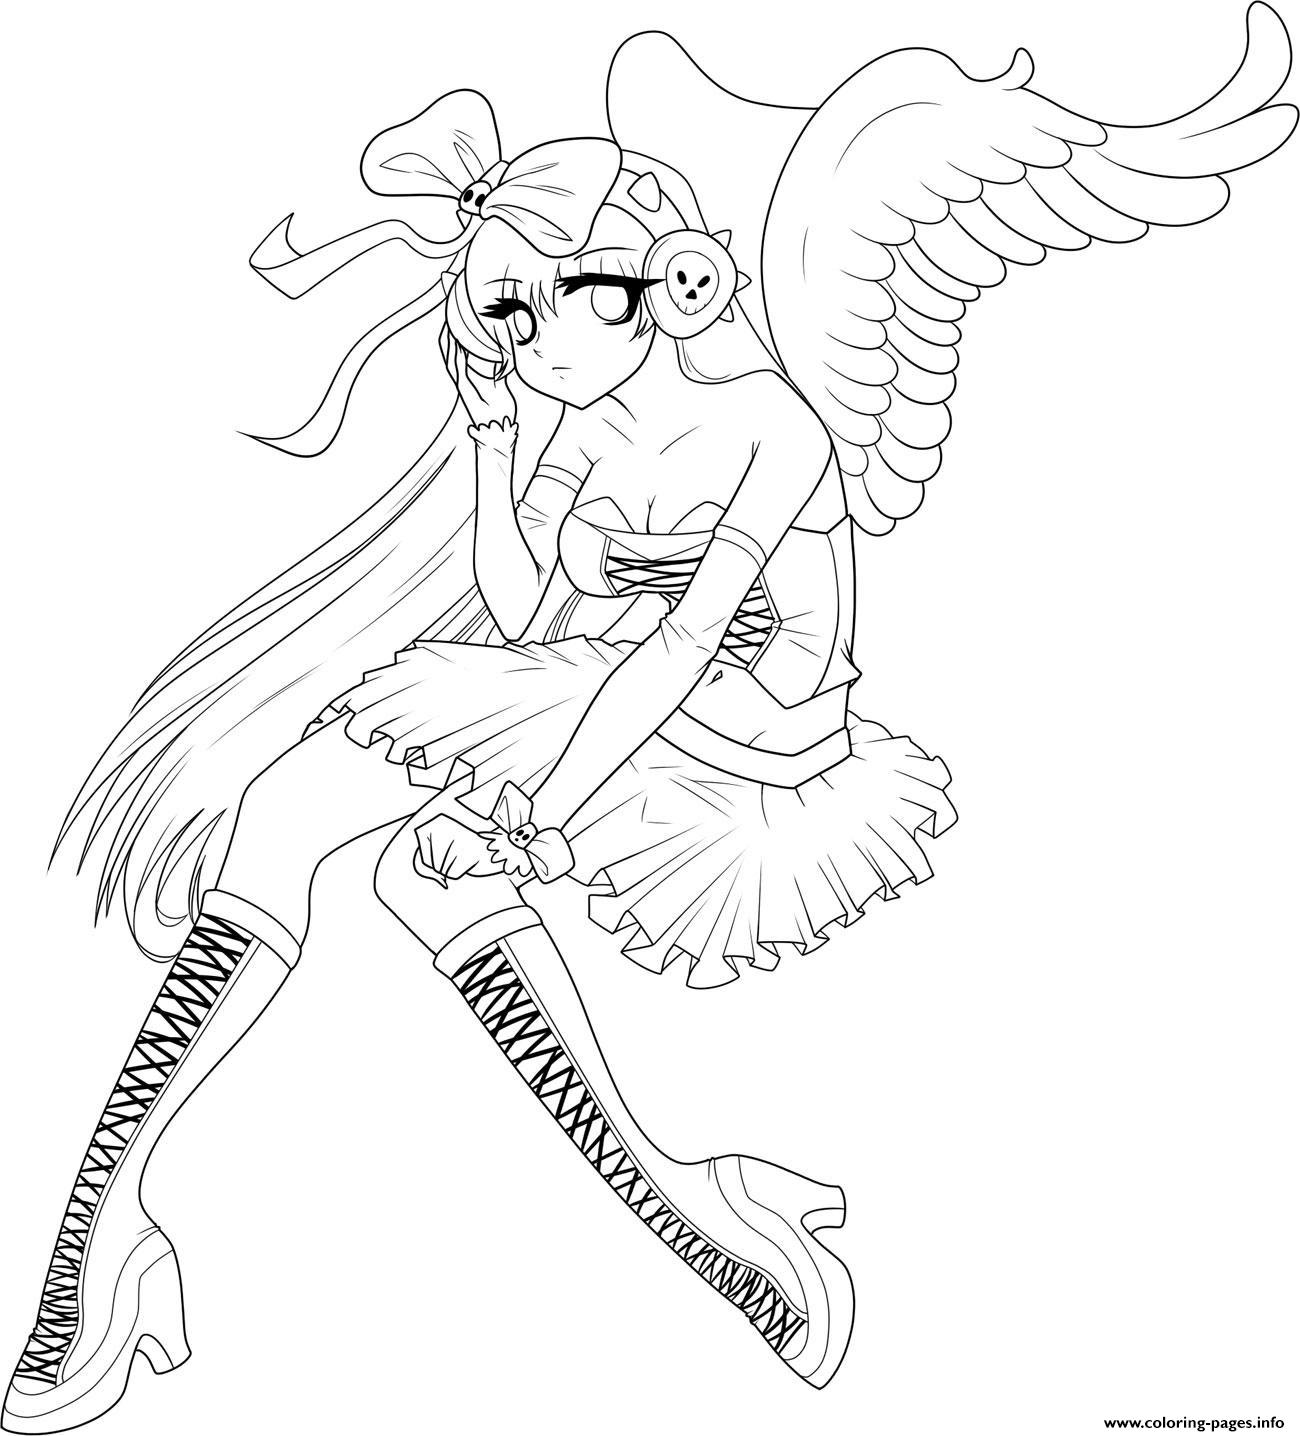 Anime Angel Girl 5 Coloring Pages Printable